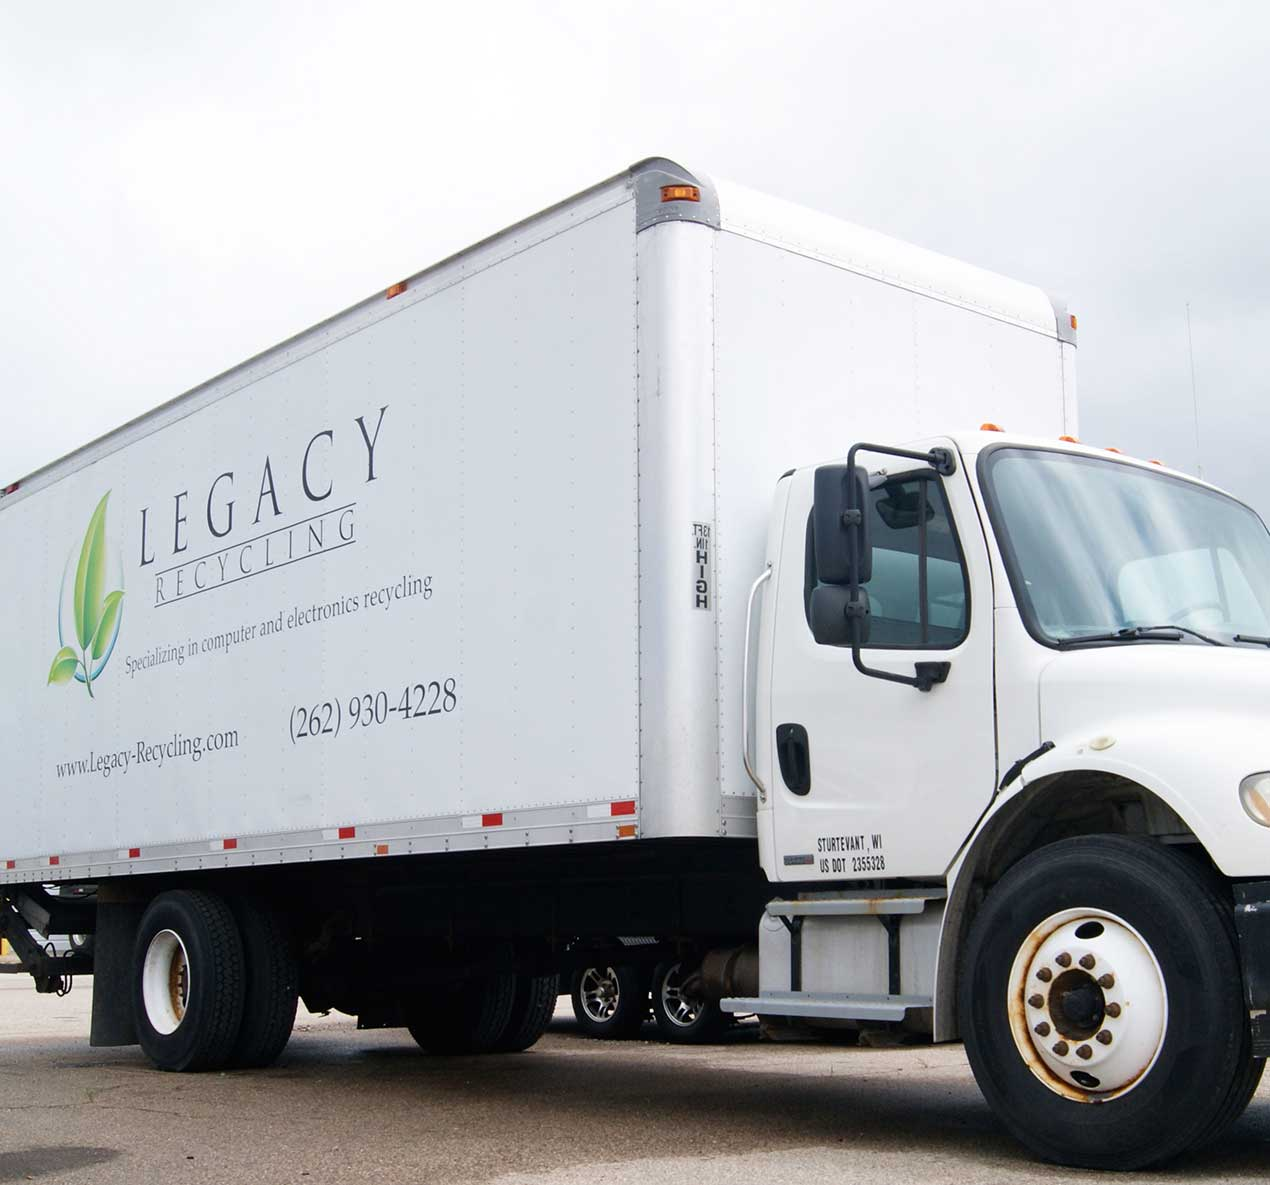 Legacy Recycling